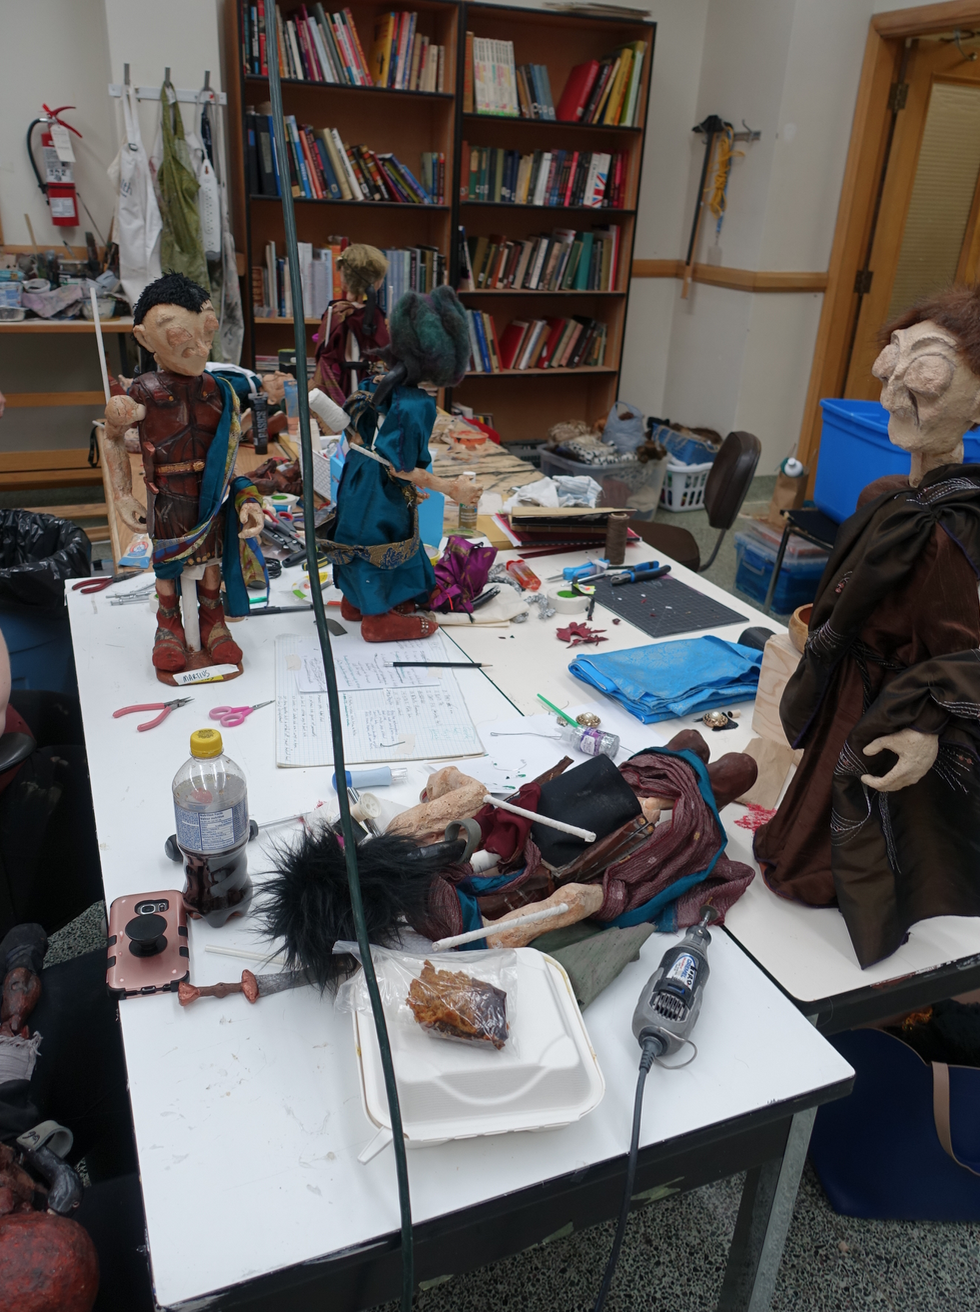 Puppets in various stages of completion.